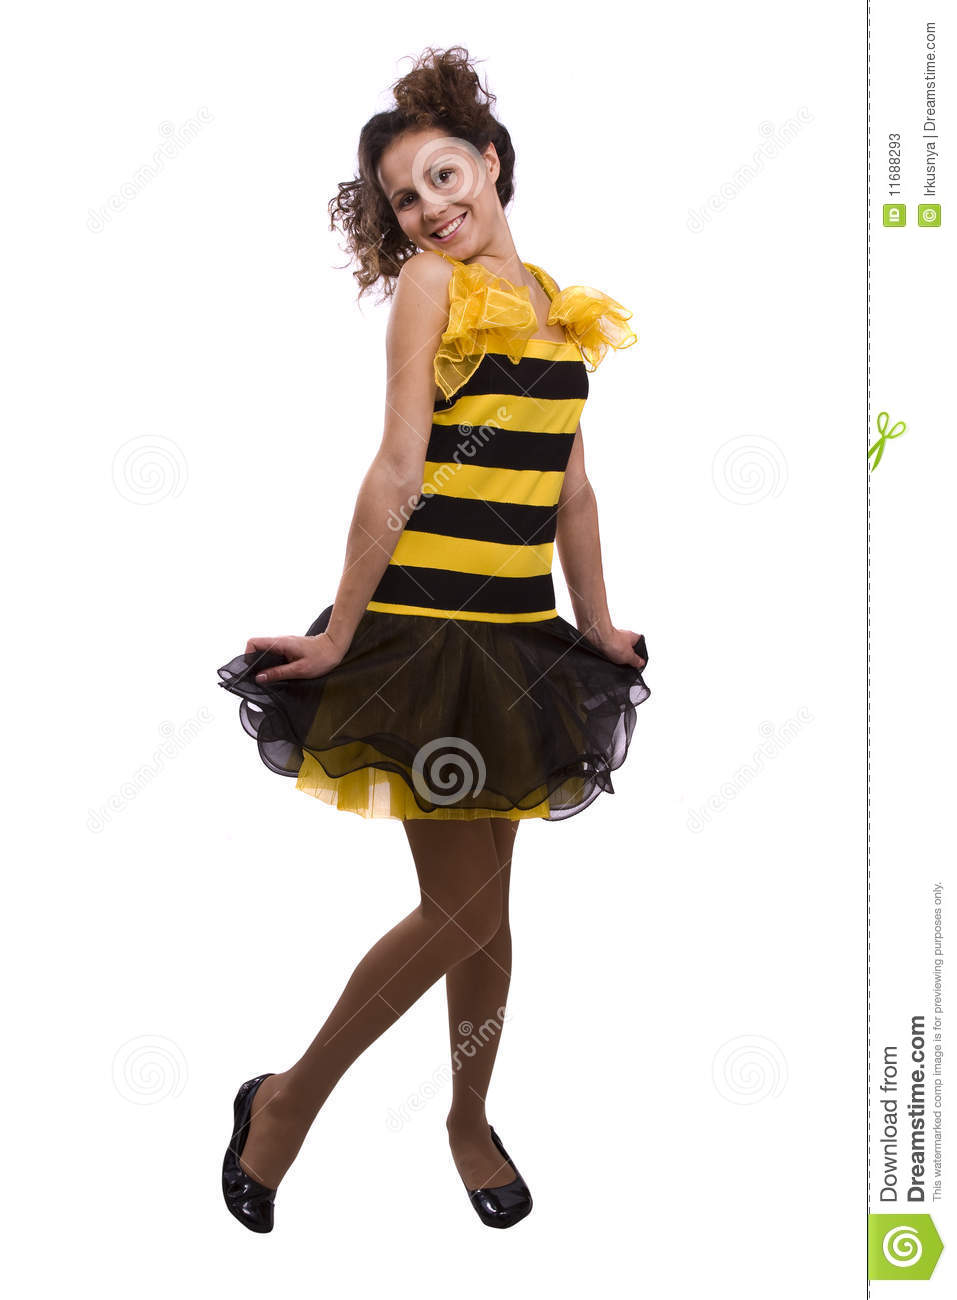 bee costumes woman. stock image. image of happiness, brown - 11688293